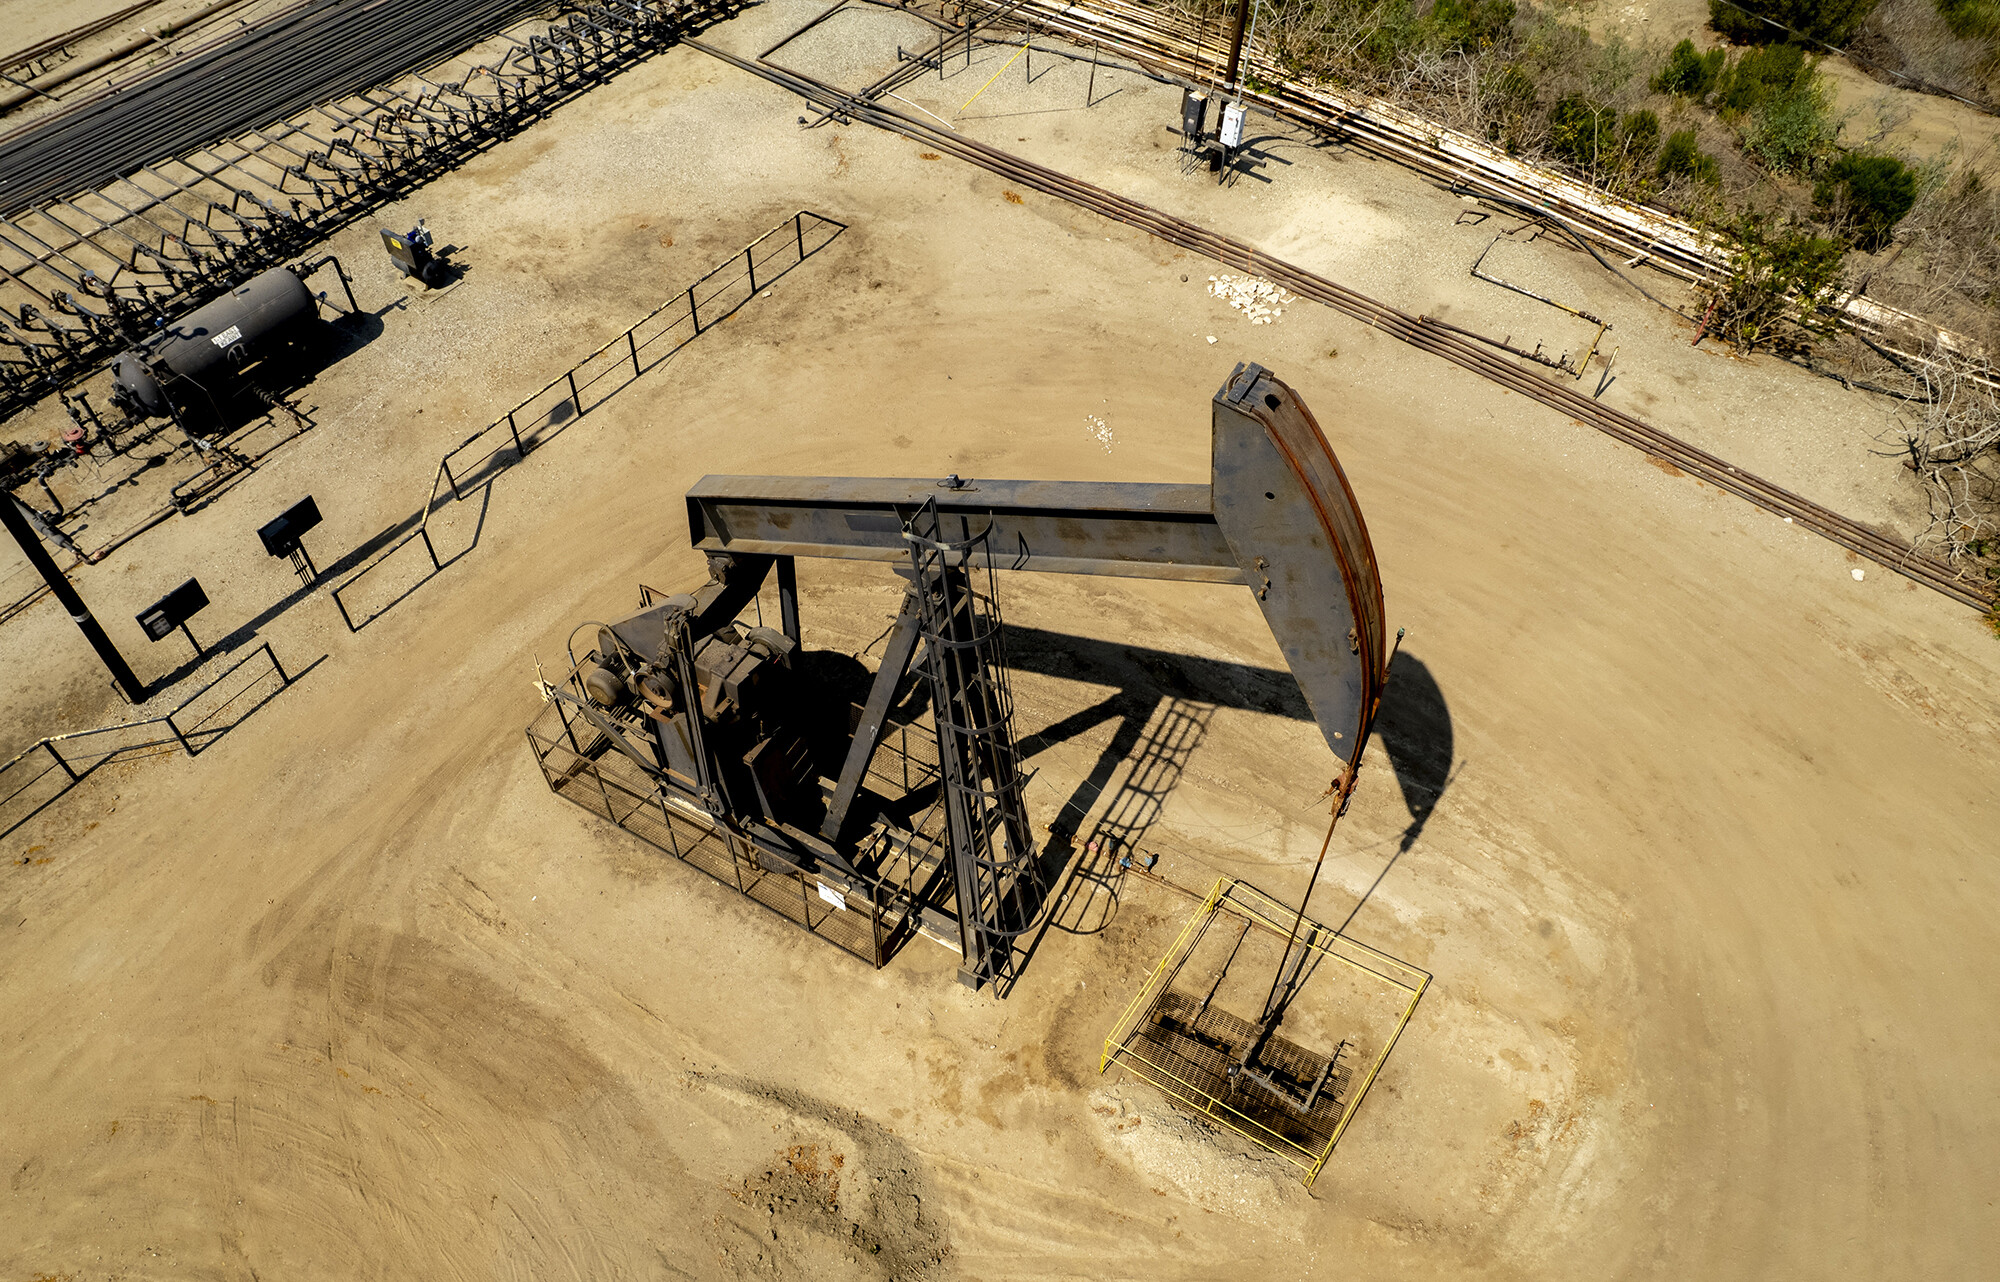 <i>Kyle Grillot/Bloomberg/Getty Images</i><br/>Energy demand is back today as the world economy reopens -- but supply simply hasn't kept up. An oil pump jack operates at the Inglewood Oil Field in Culver City